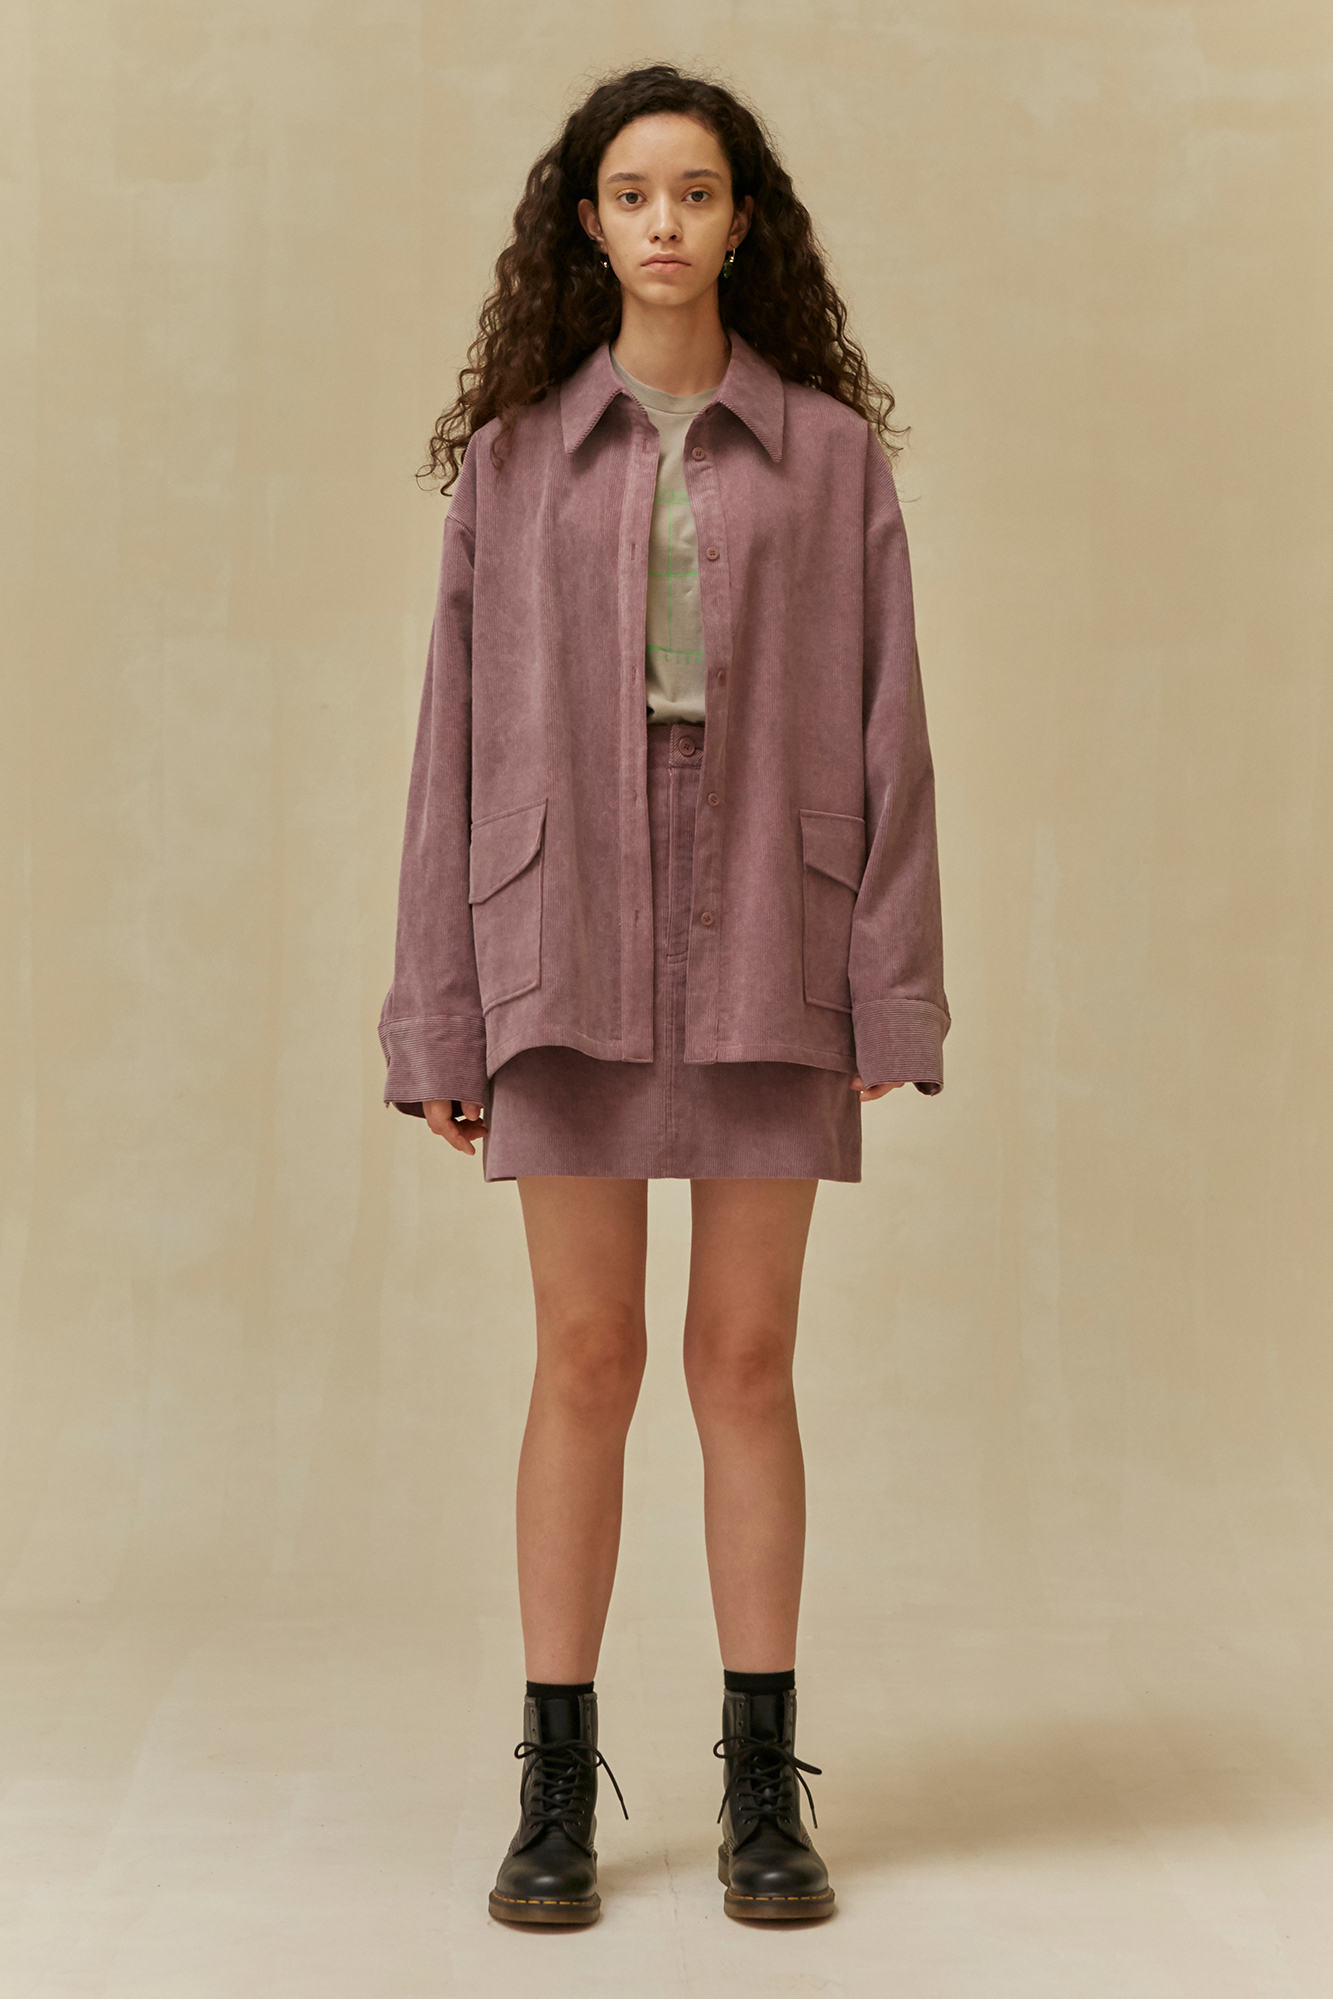 <u>SHOP</u><br>19 WINTER LOCLE Corduroy Shirt - purple